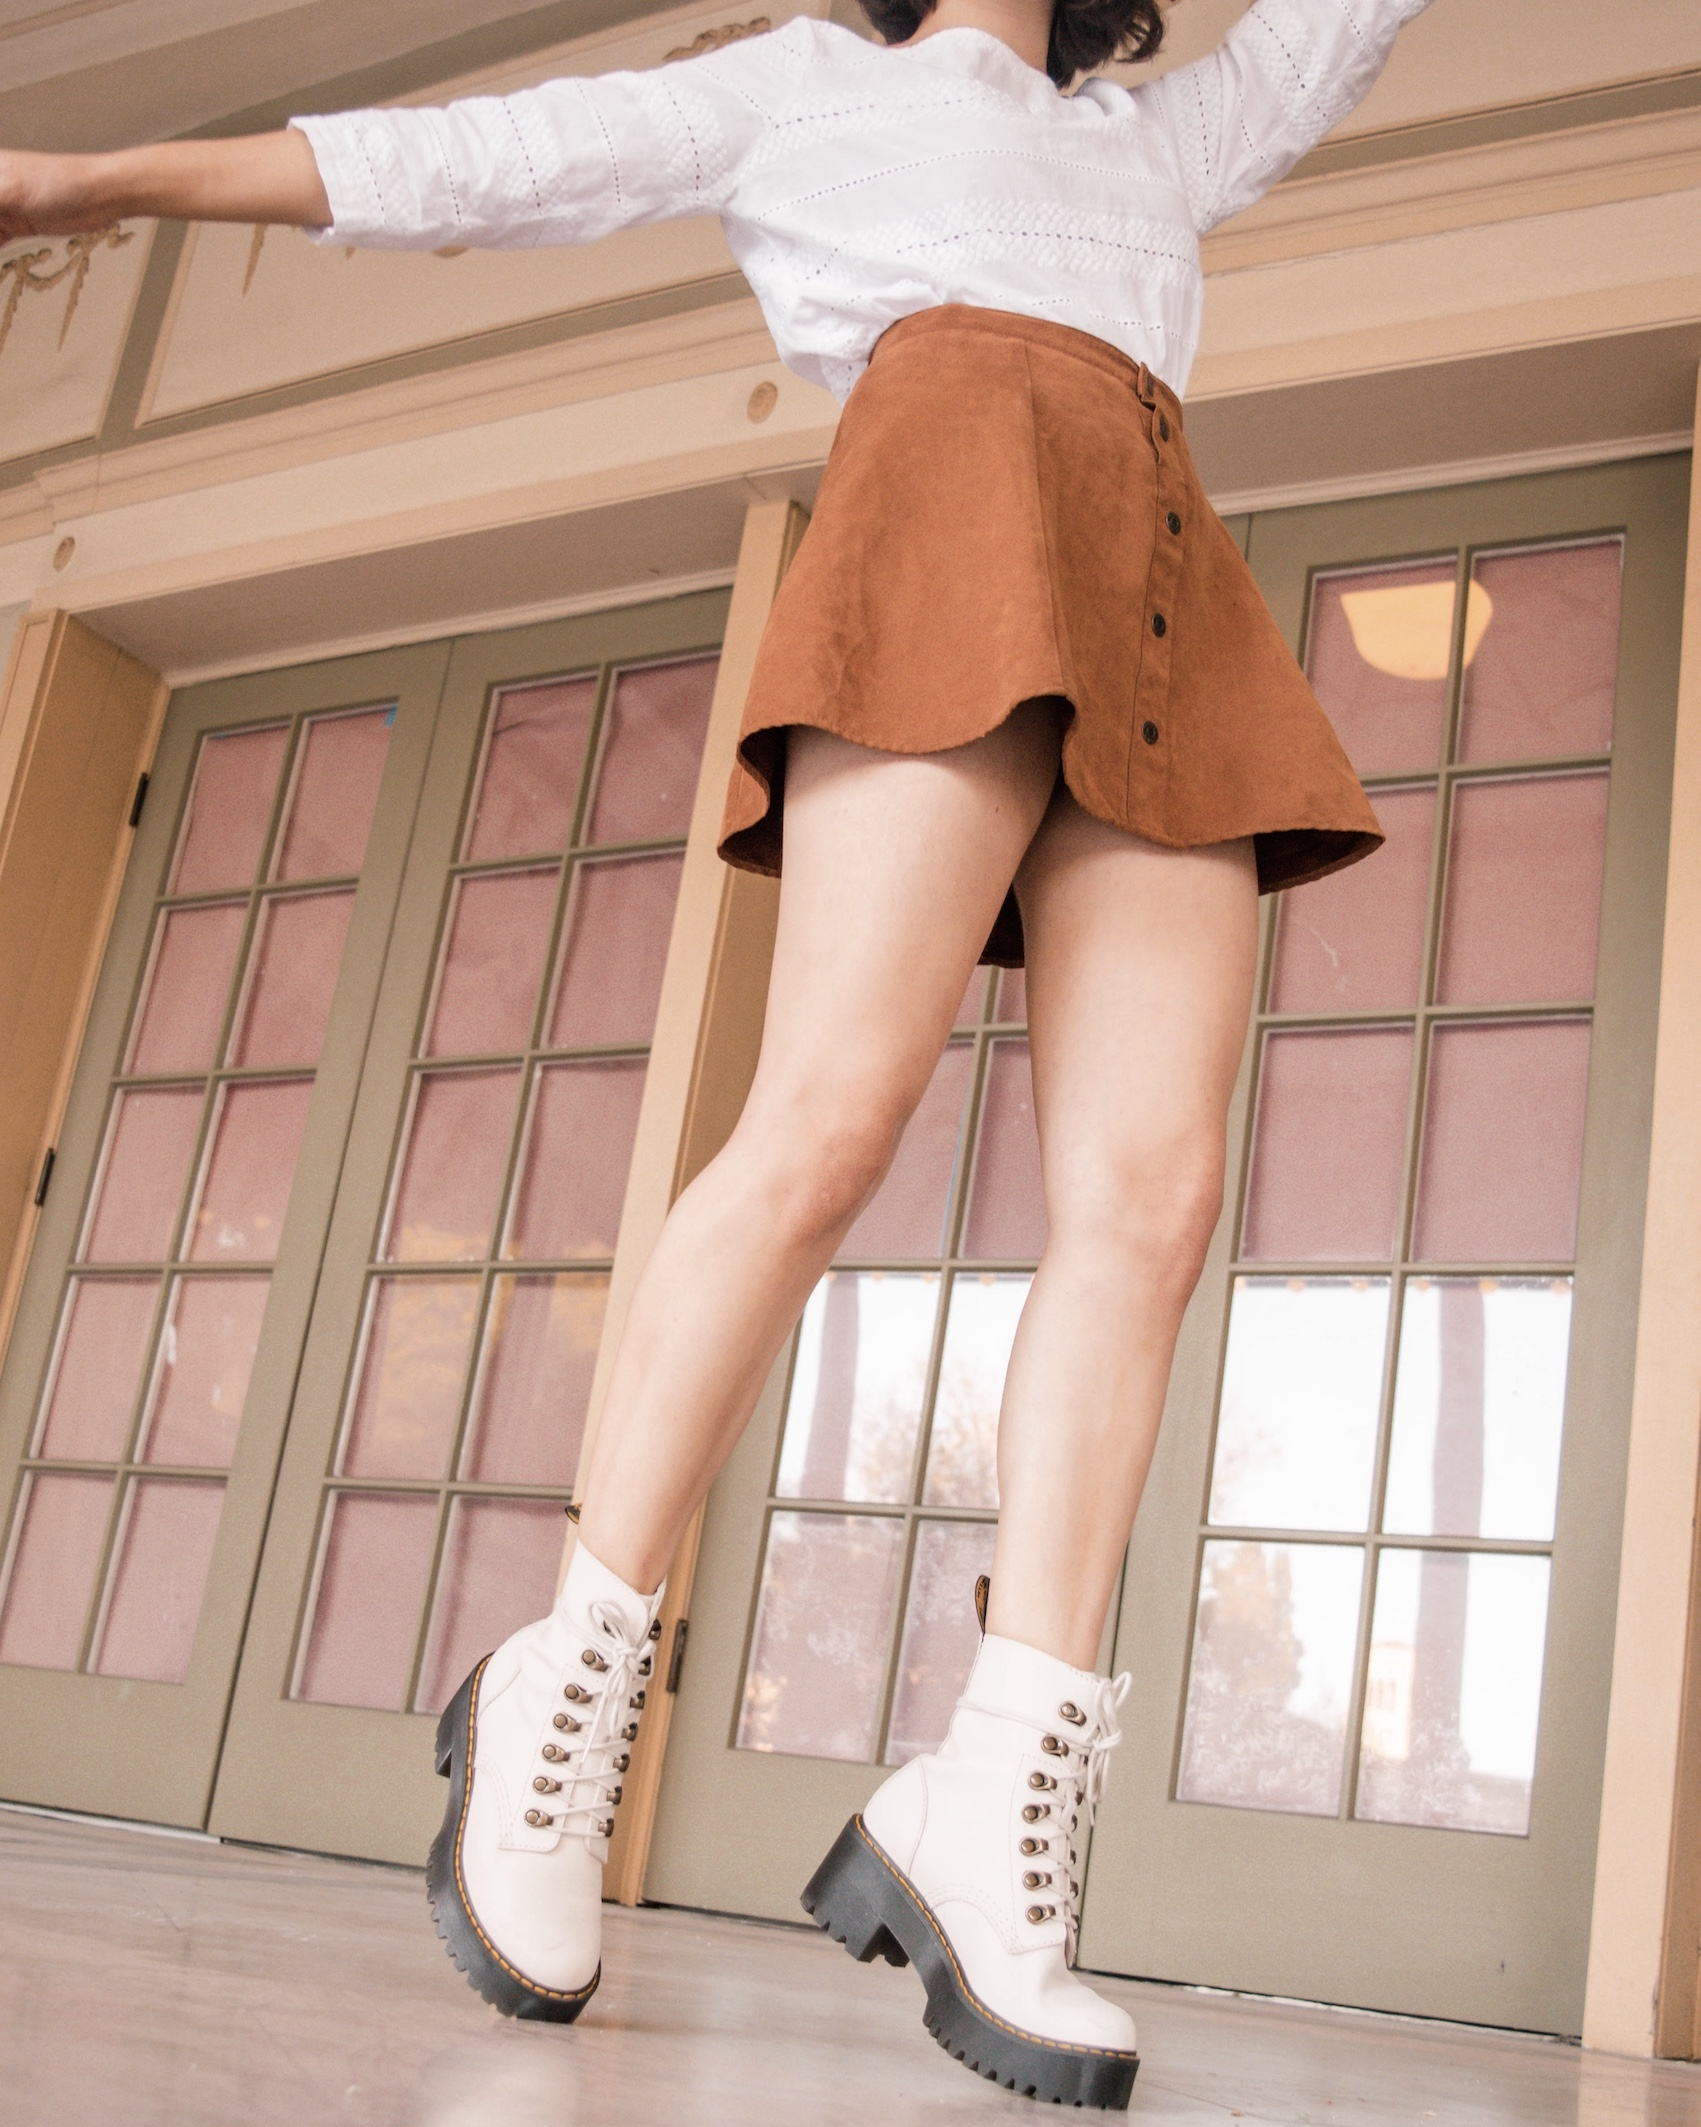 Camel brown mini skirt with white shirt // A Week Of Self-Expressive Outfits With Aja Duran From Aja With Love on The Good Trade